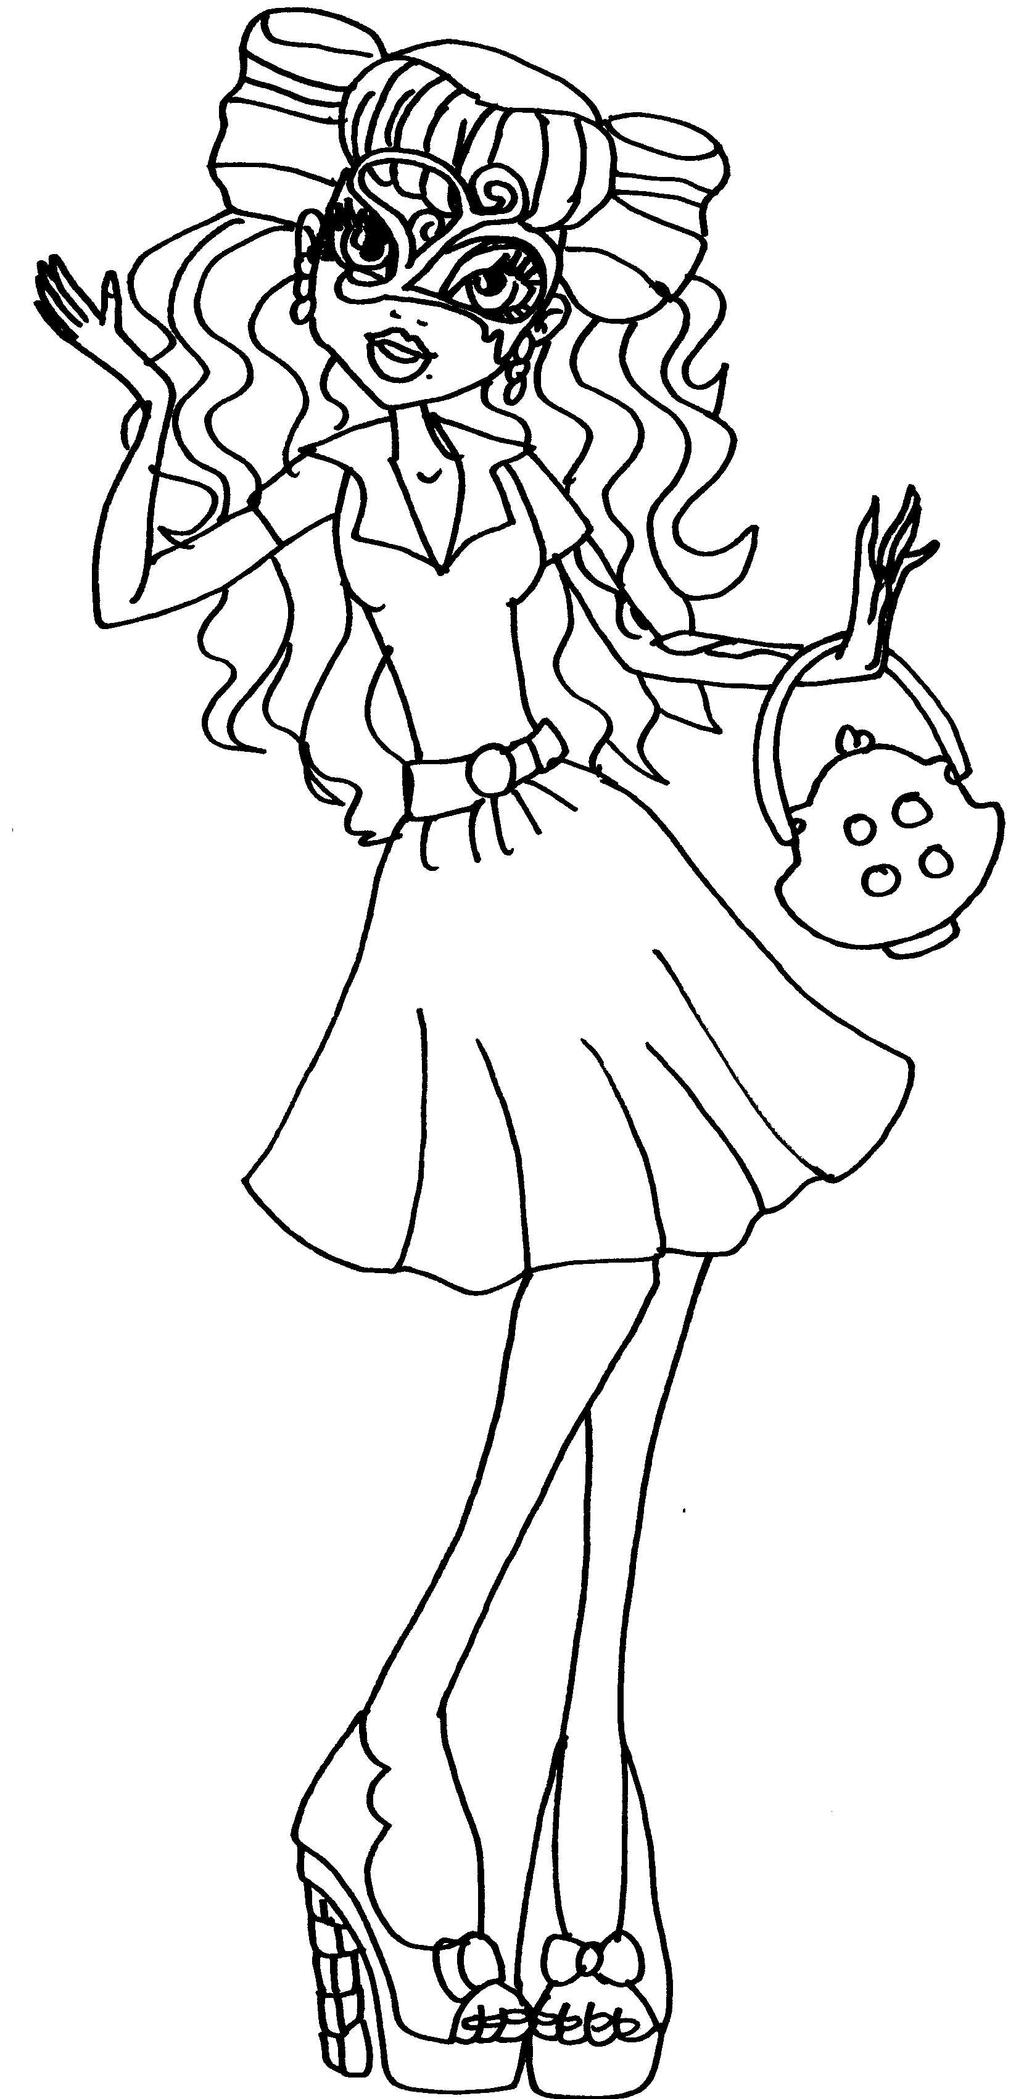 Operetta by elfkena on deviantart for Operetta monster high coloring pages